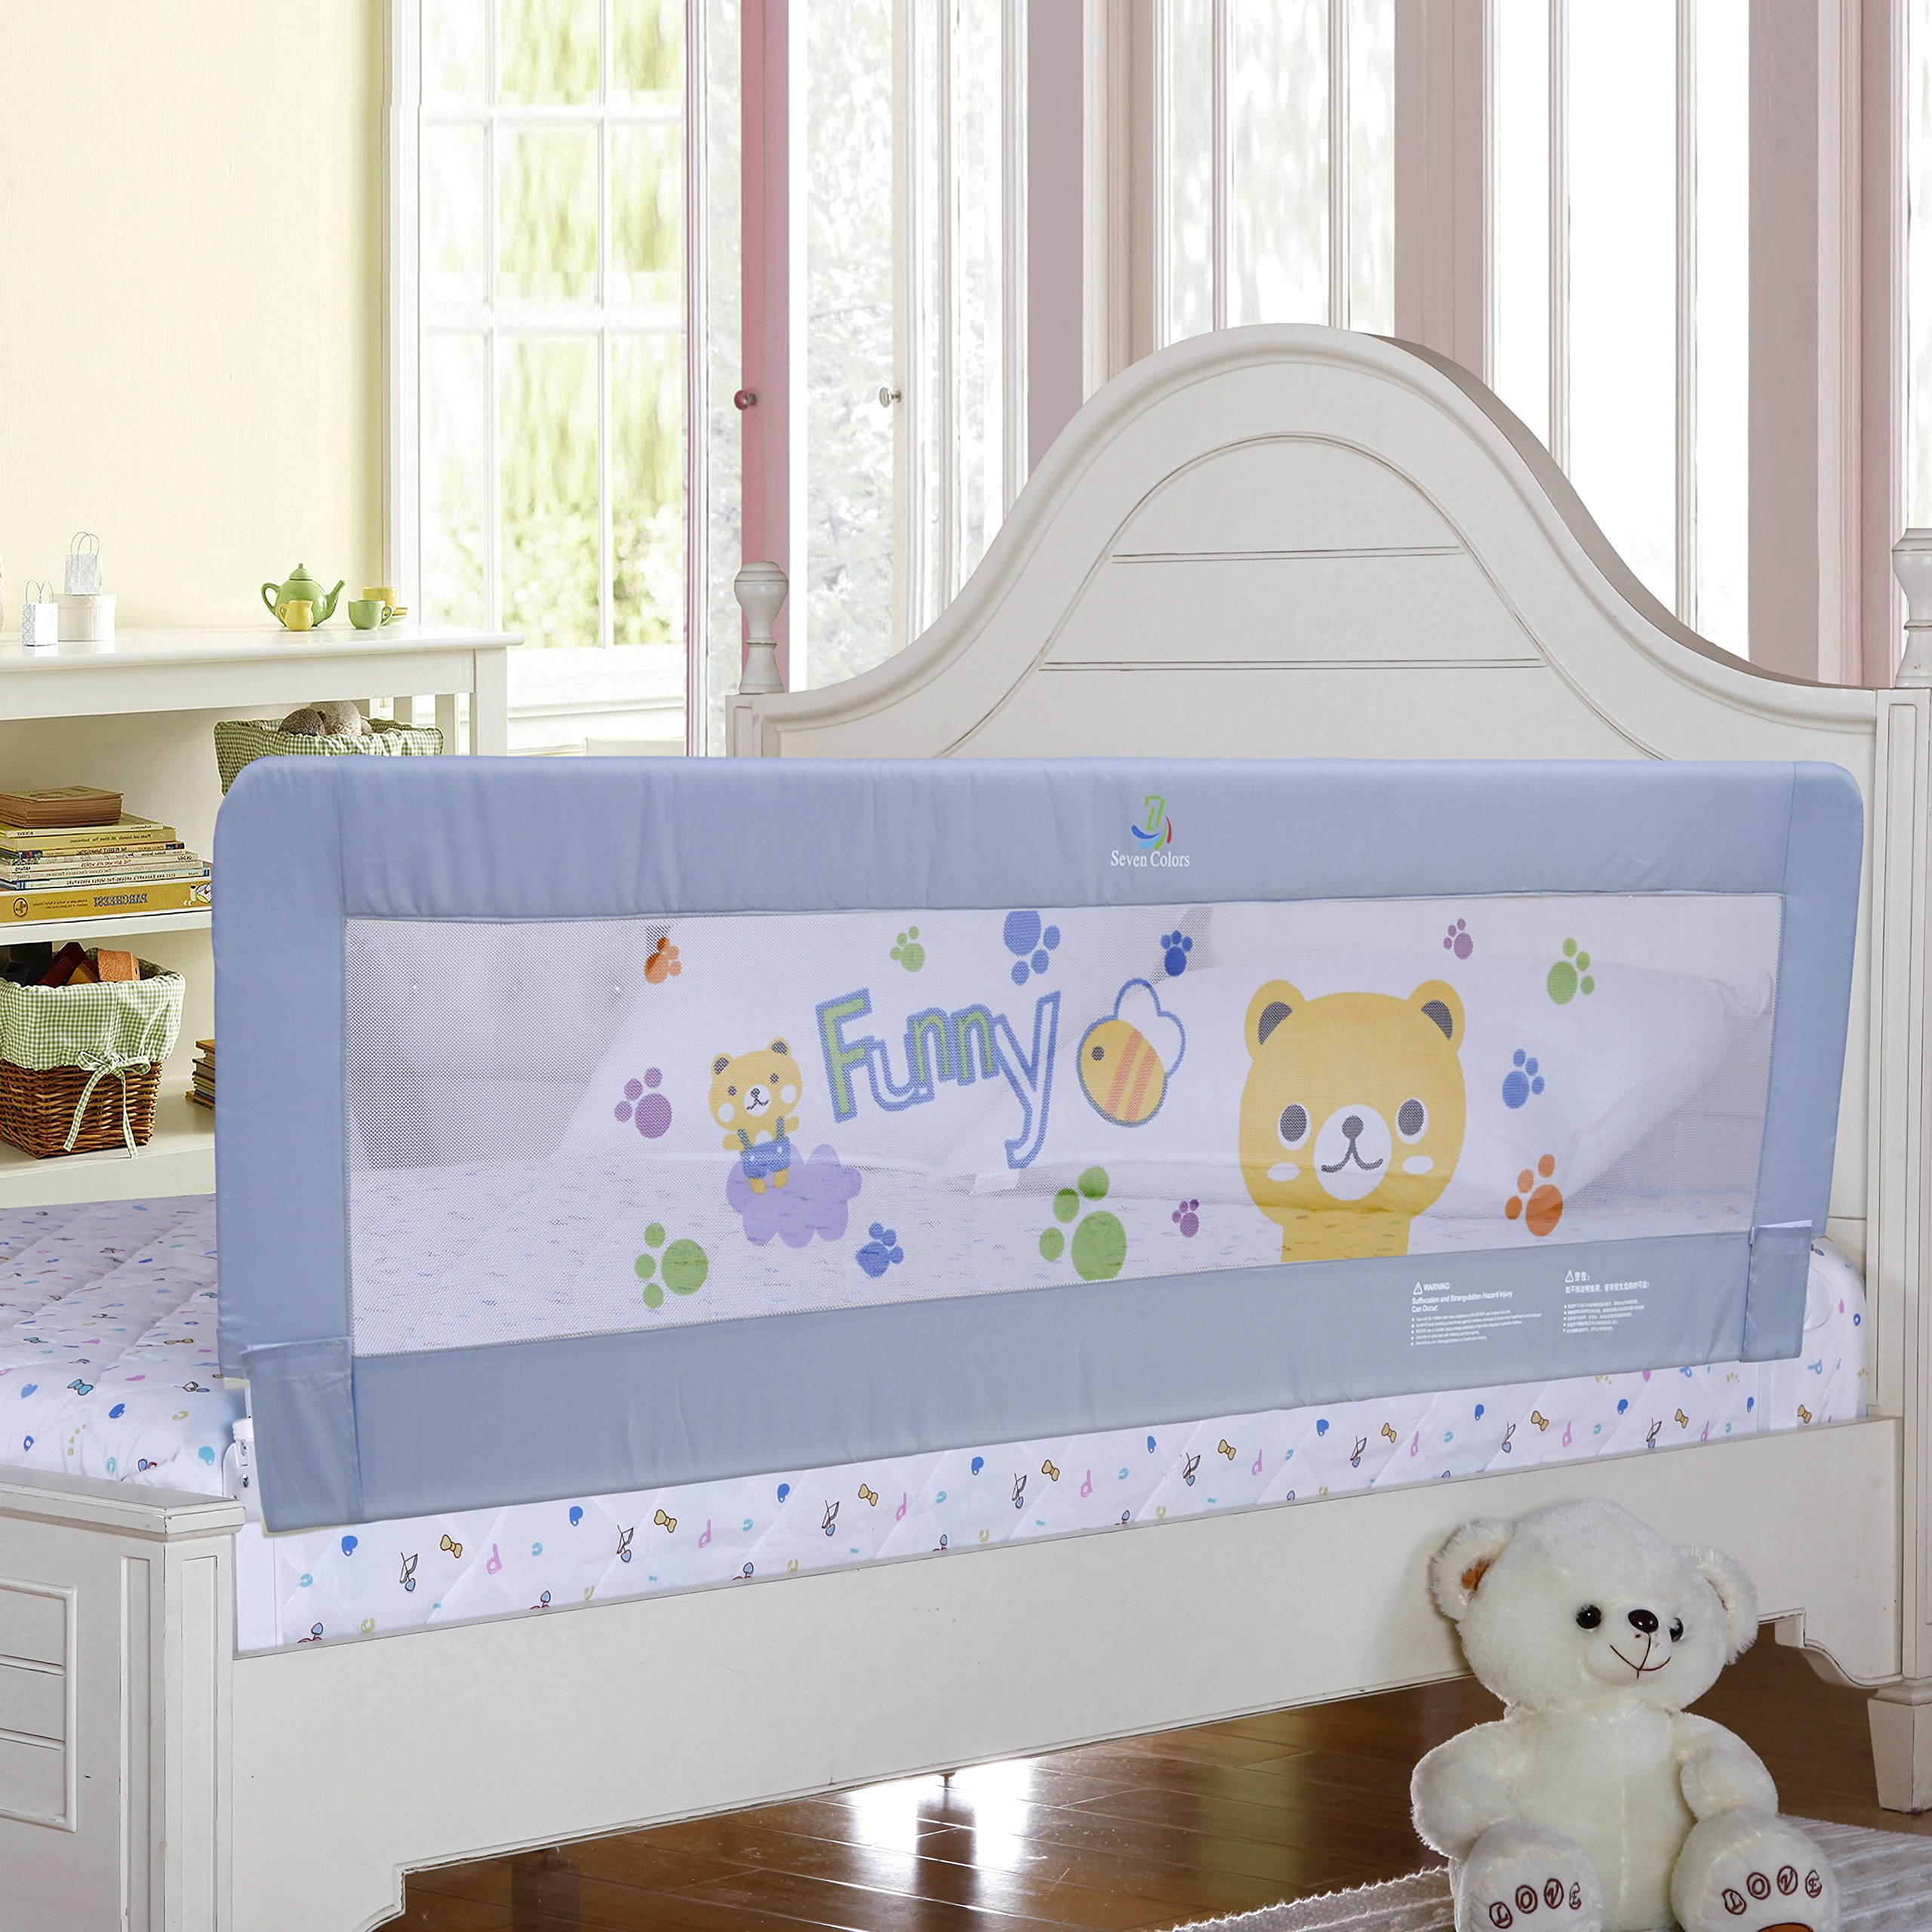 Gray Color Baby Bed Rail Extra Long Bed Guard Safety Bedrail Stop Falling for Kids Fits Toddler to Queen & King Size Bed, All Size (70'' inches)